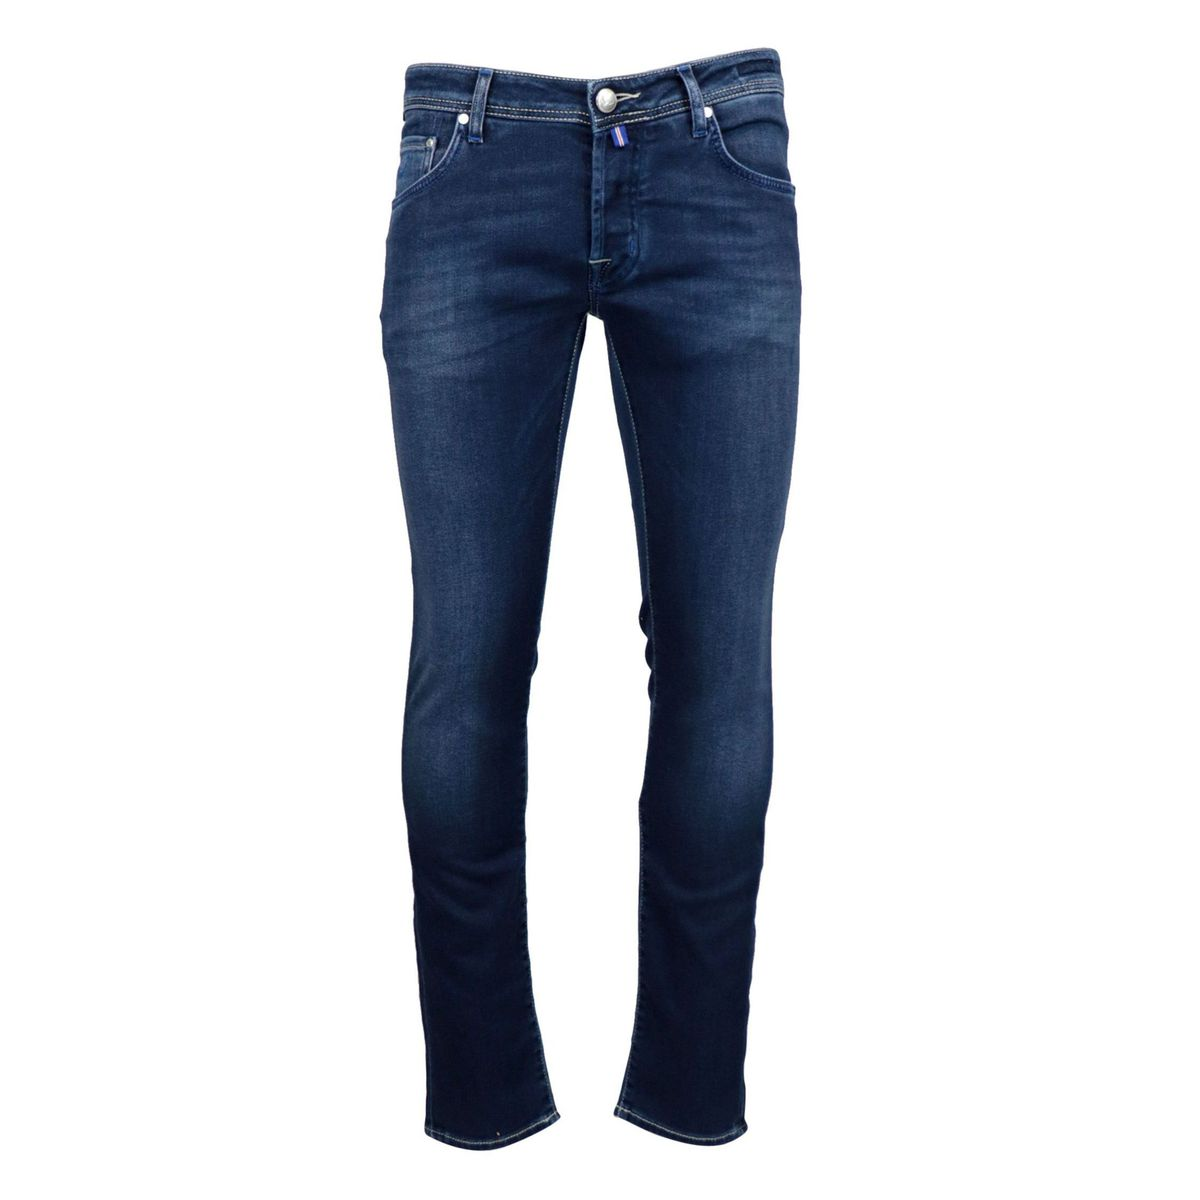 5-pocket jeans in dark stretch denim Dark denim Jacob Cohen